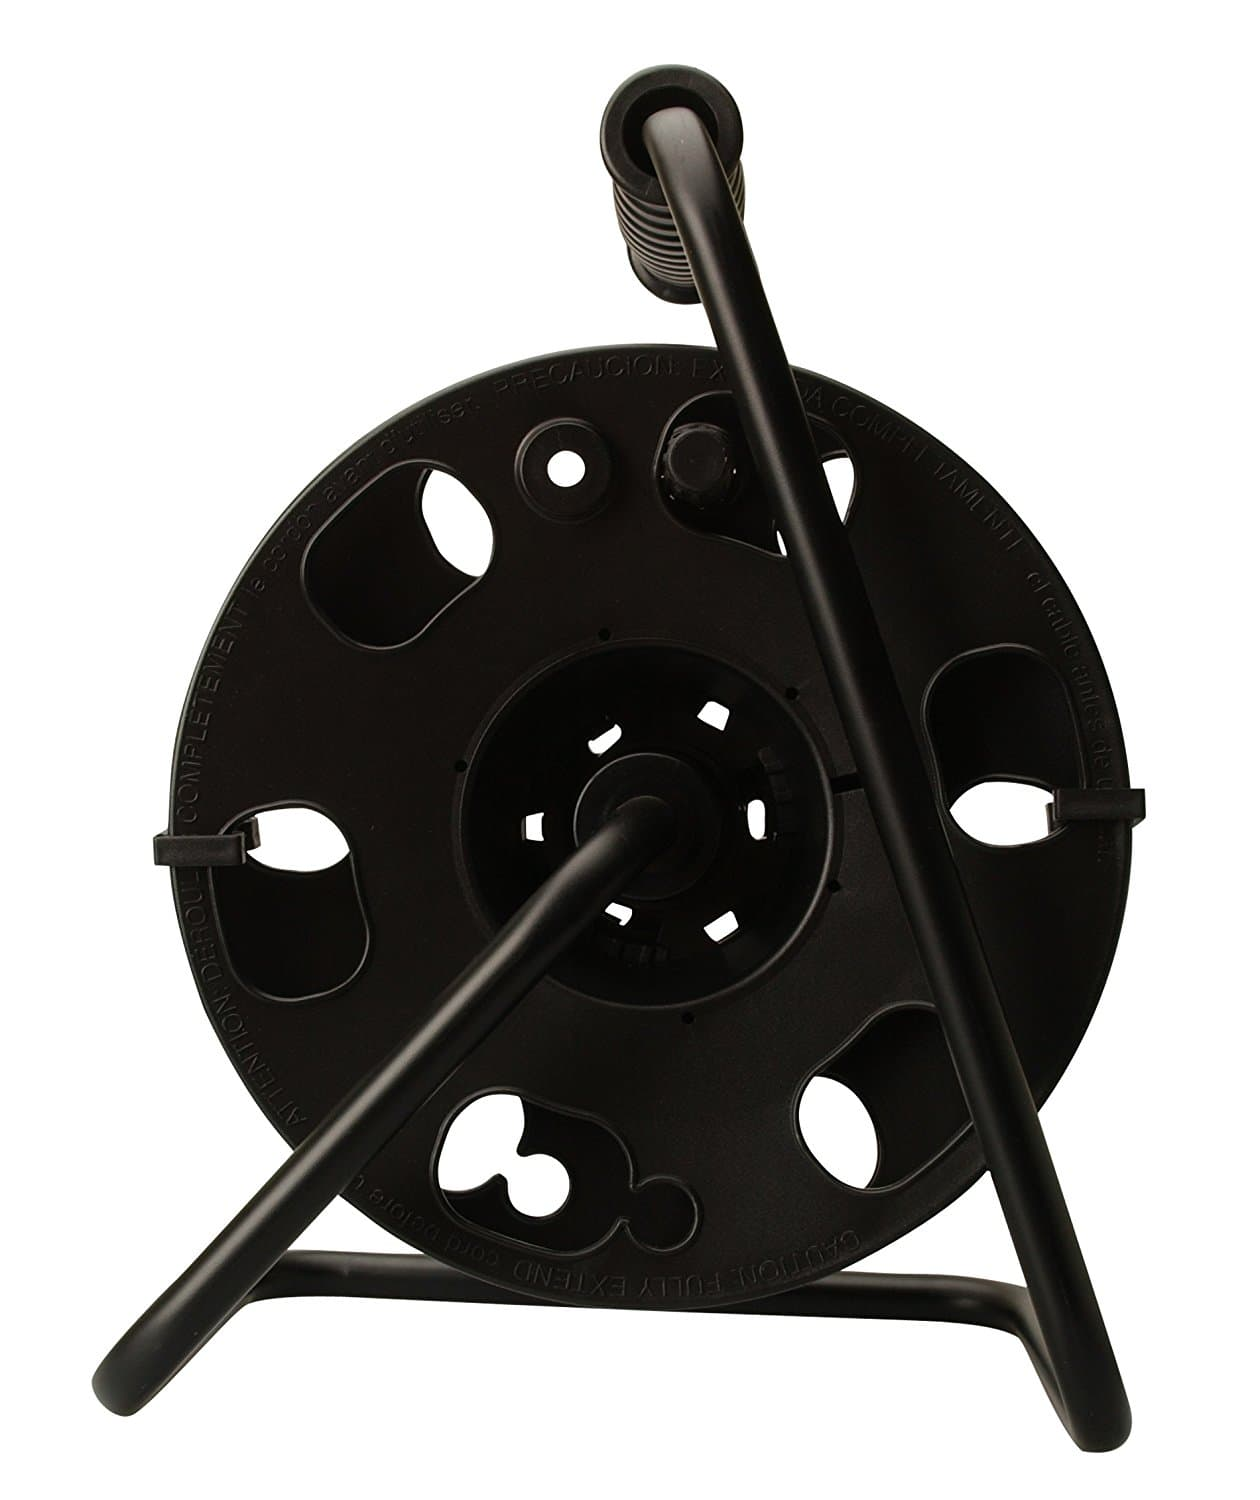 Amazon Prime Members: Woods Metal Cord Reel Stand In Black (Holds Up To 150 Feet 16/3 Cords) $8.60